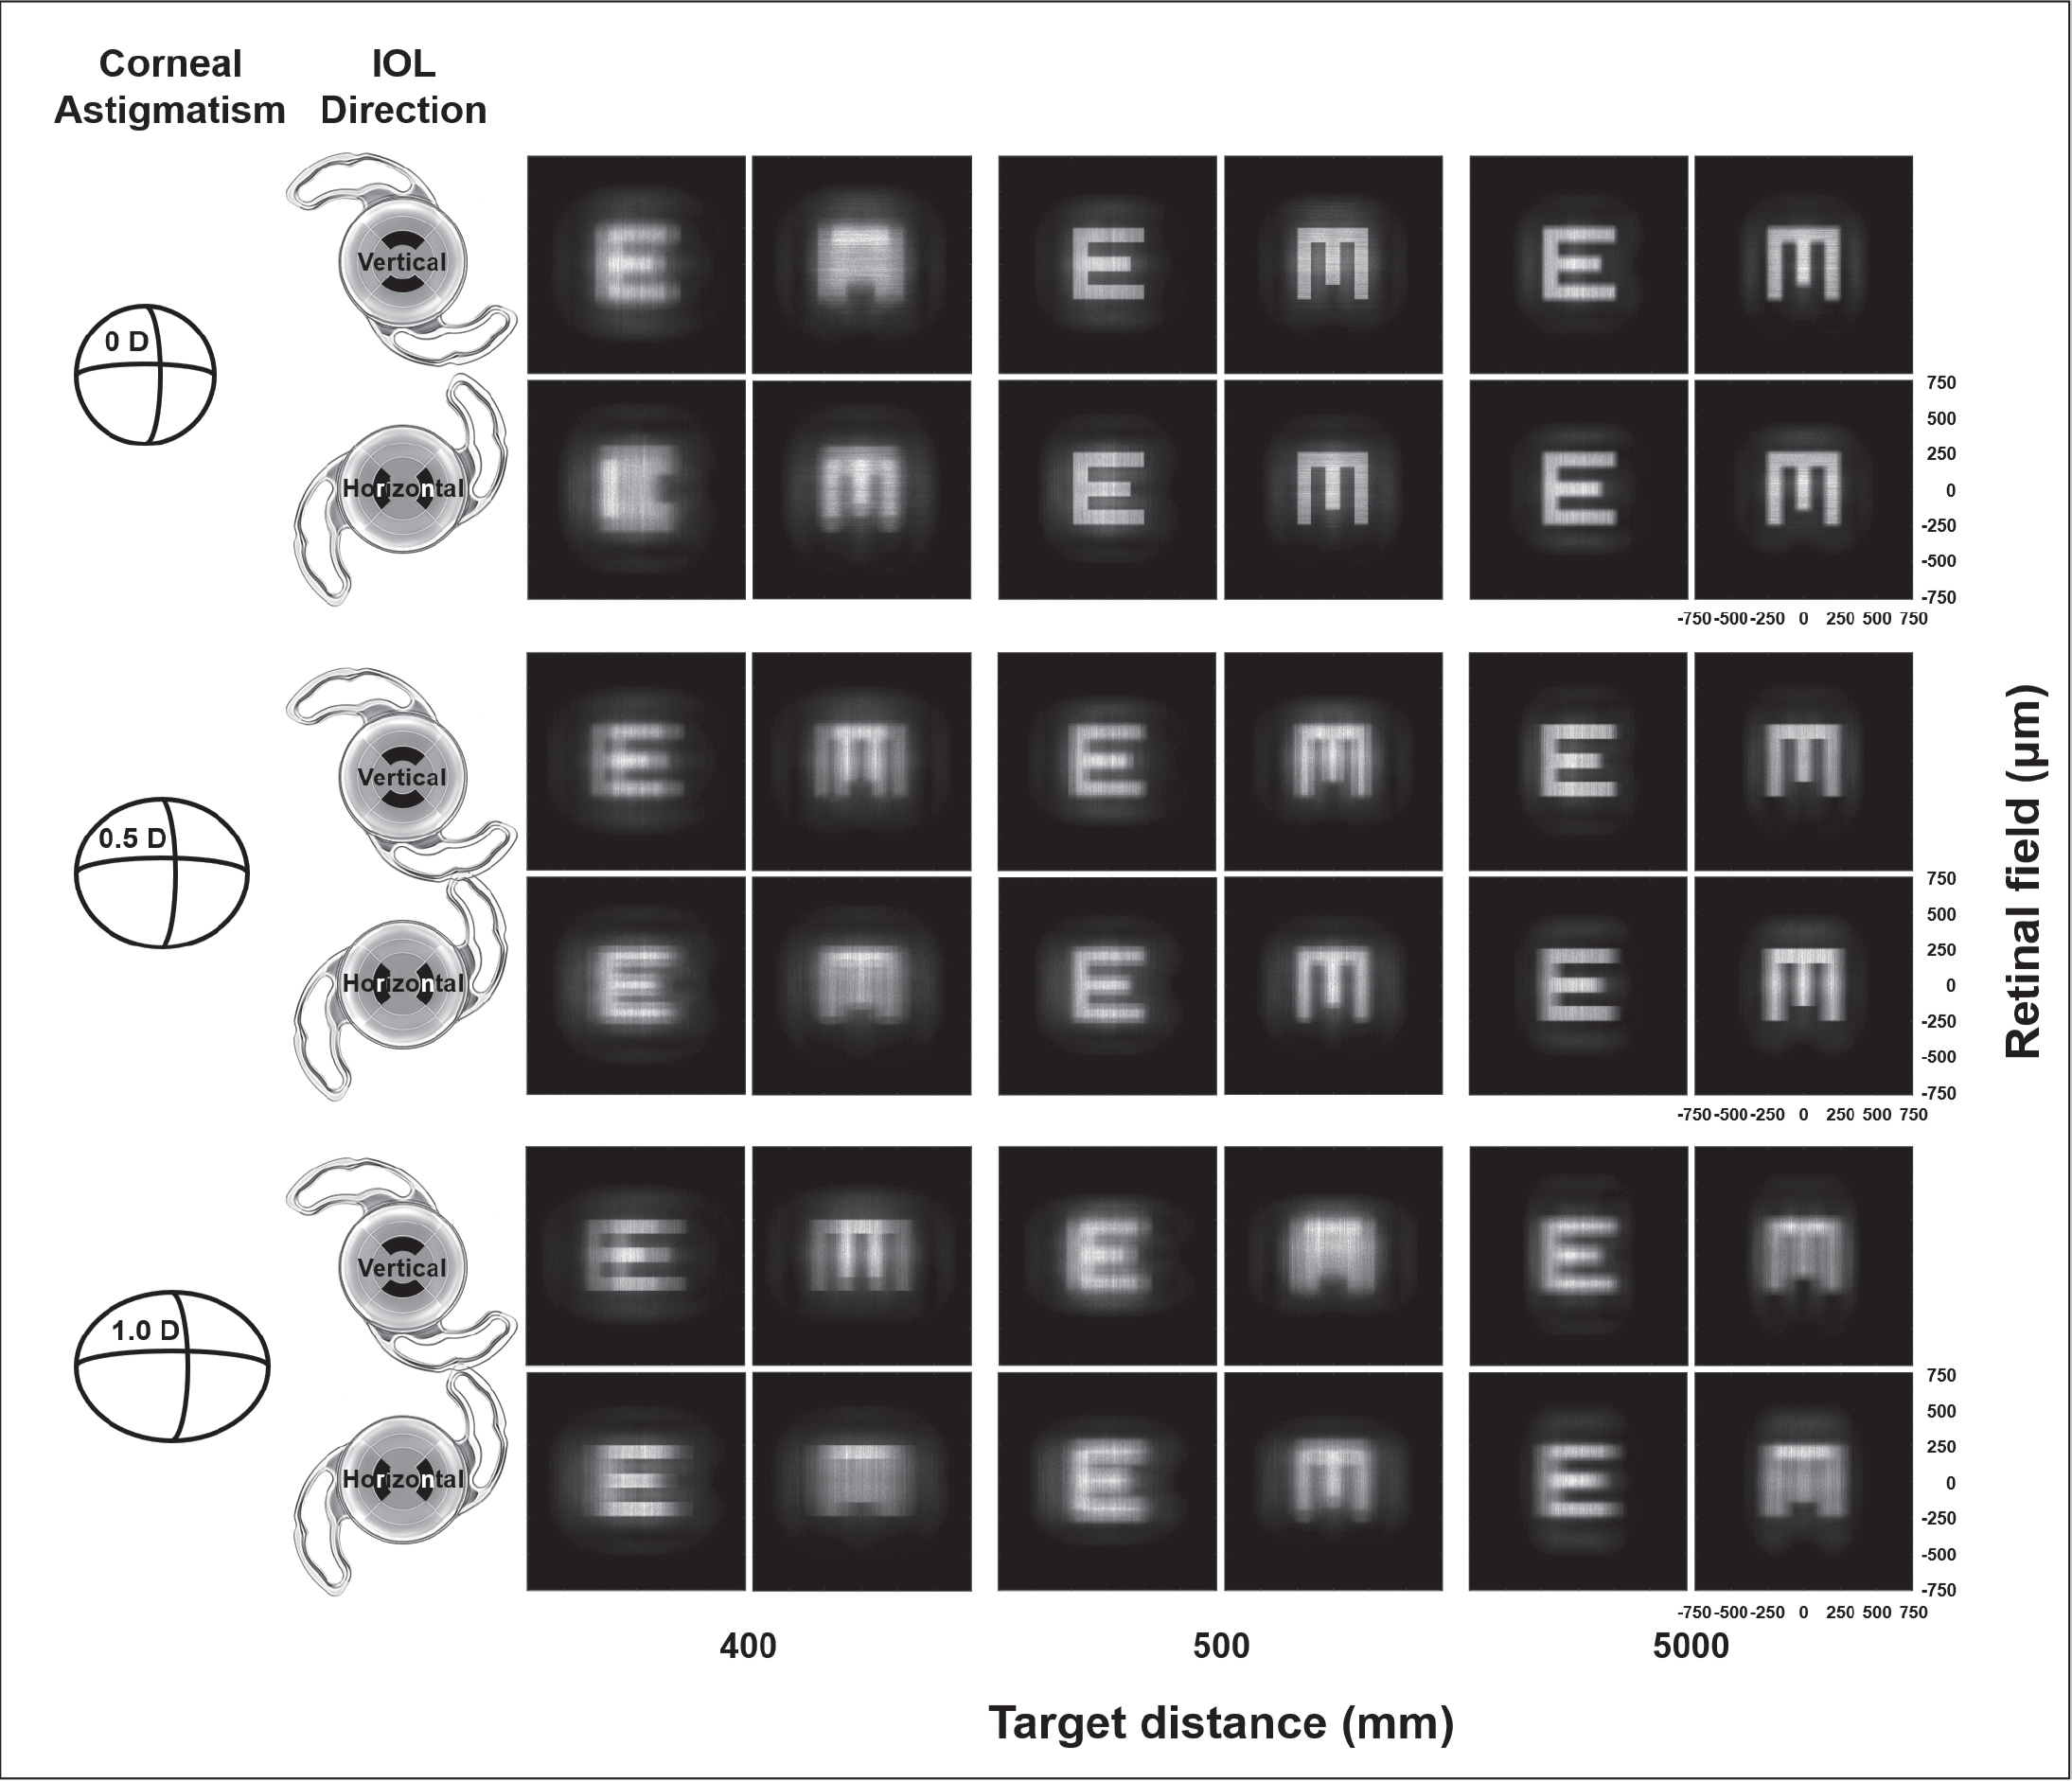 Retinal images of pseudophakia with a Precizon Presbyopic intraocular lens (IOL) (Ophtec BV) in an integrated ray-tracing simulation using Lambertian source E and M targets with various target distances, various with-the-rule corneal astigmatism, and two intraocular lens implantation directions. D = diopters